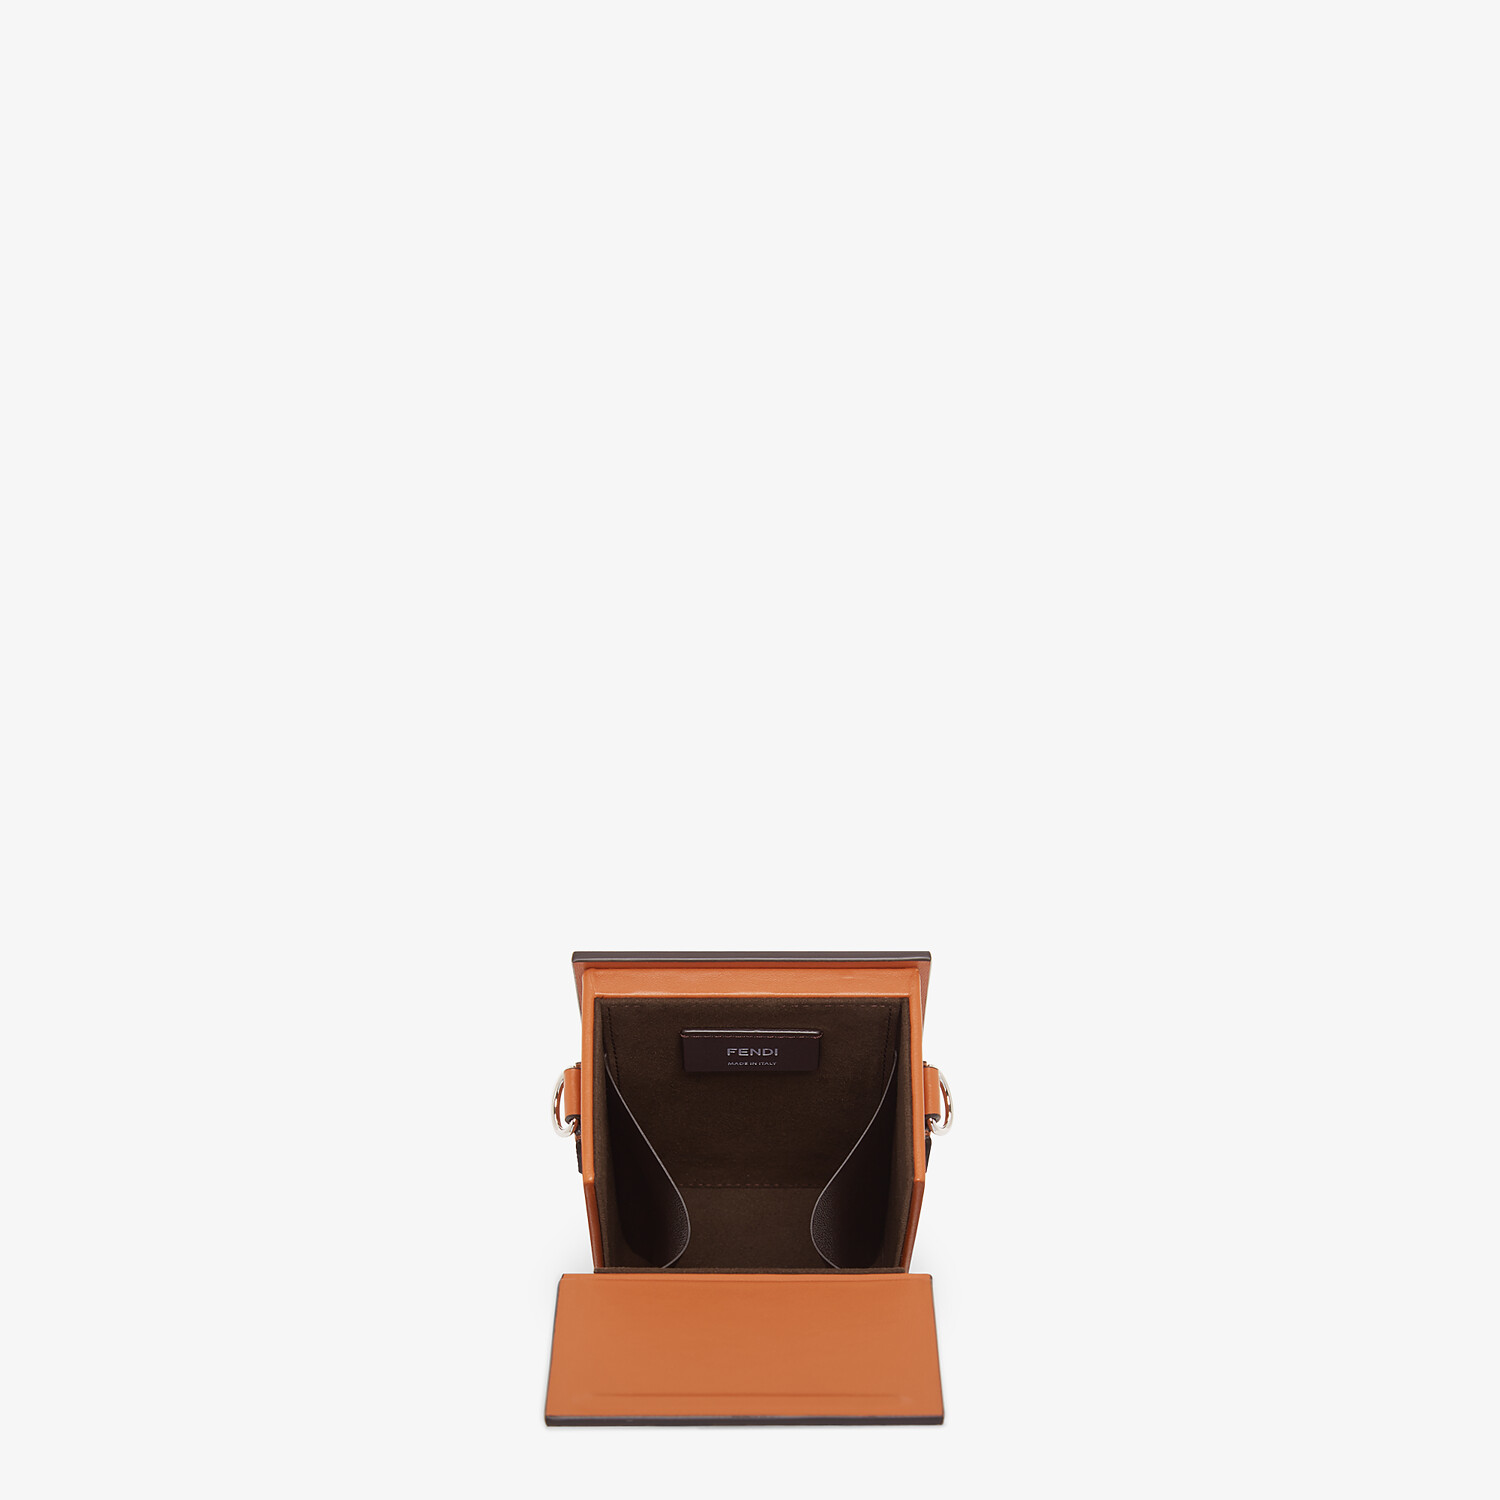 FENDI VERTICAL BOX - Brown leather bag - view 4 detail